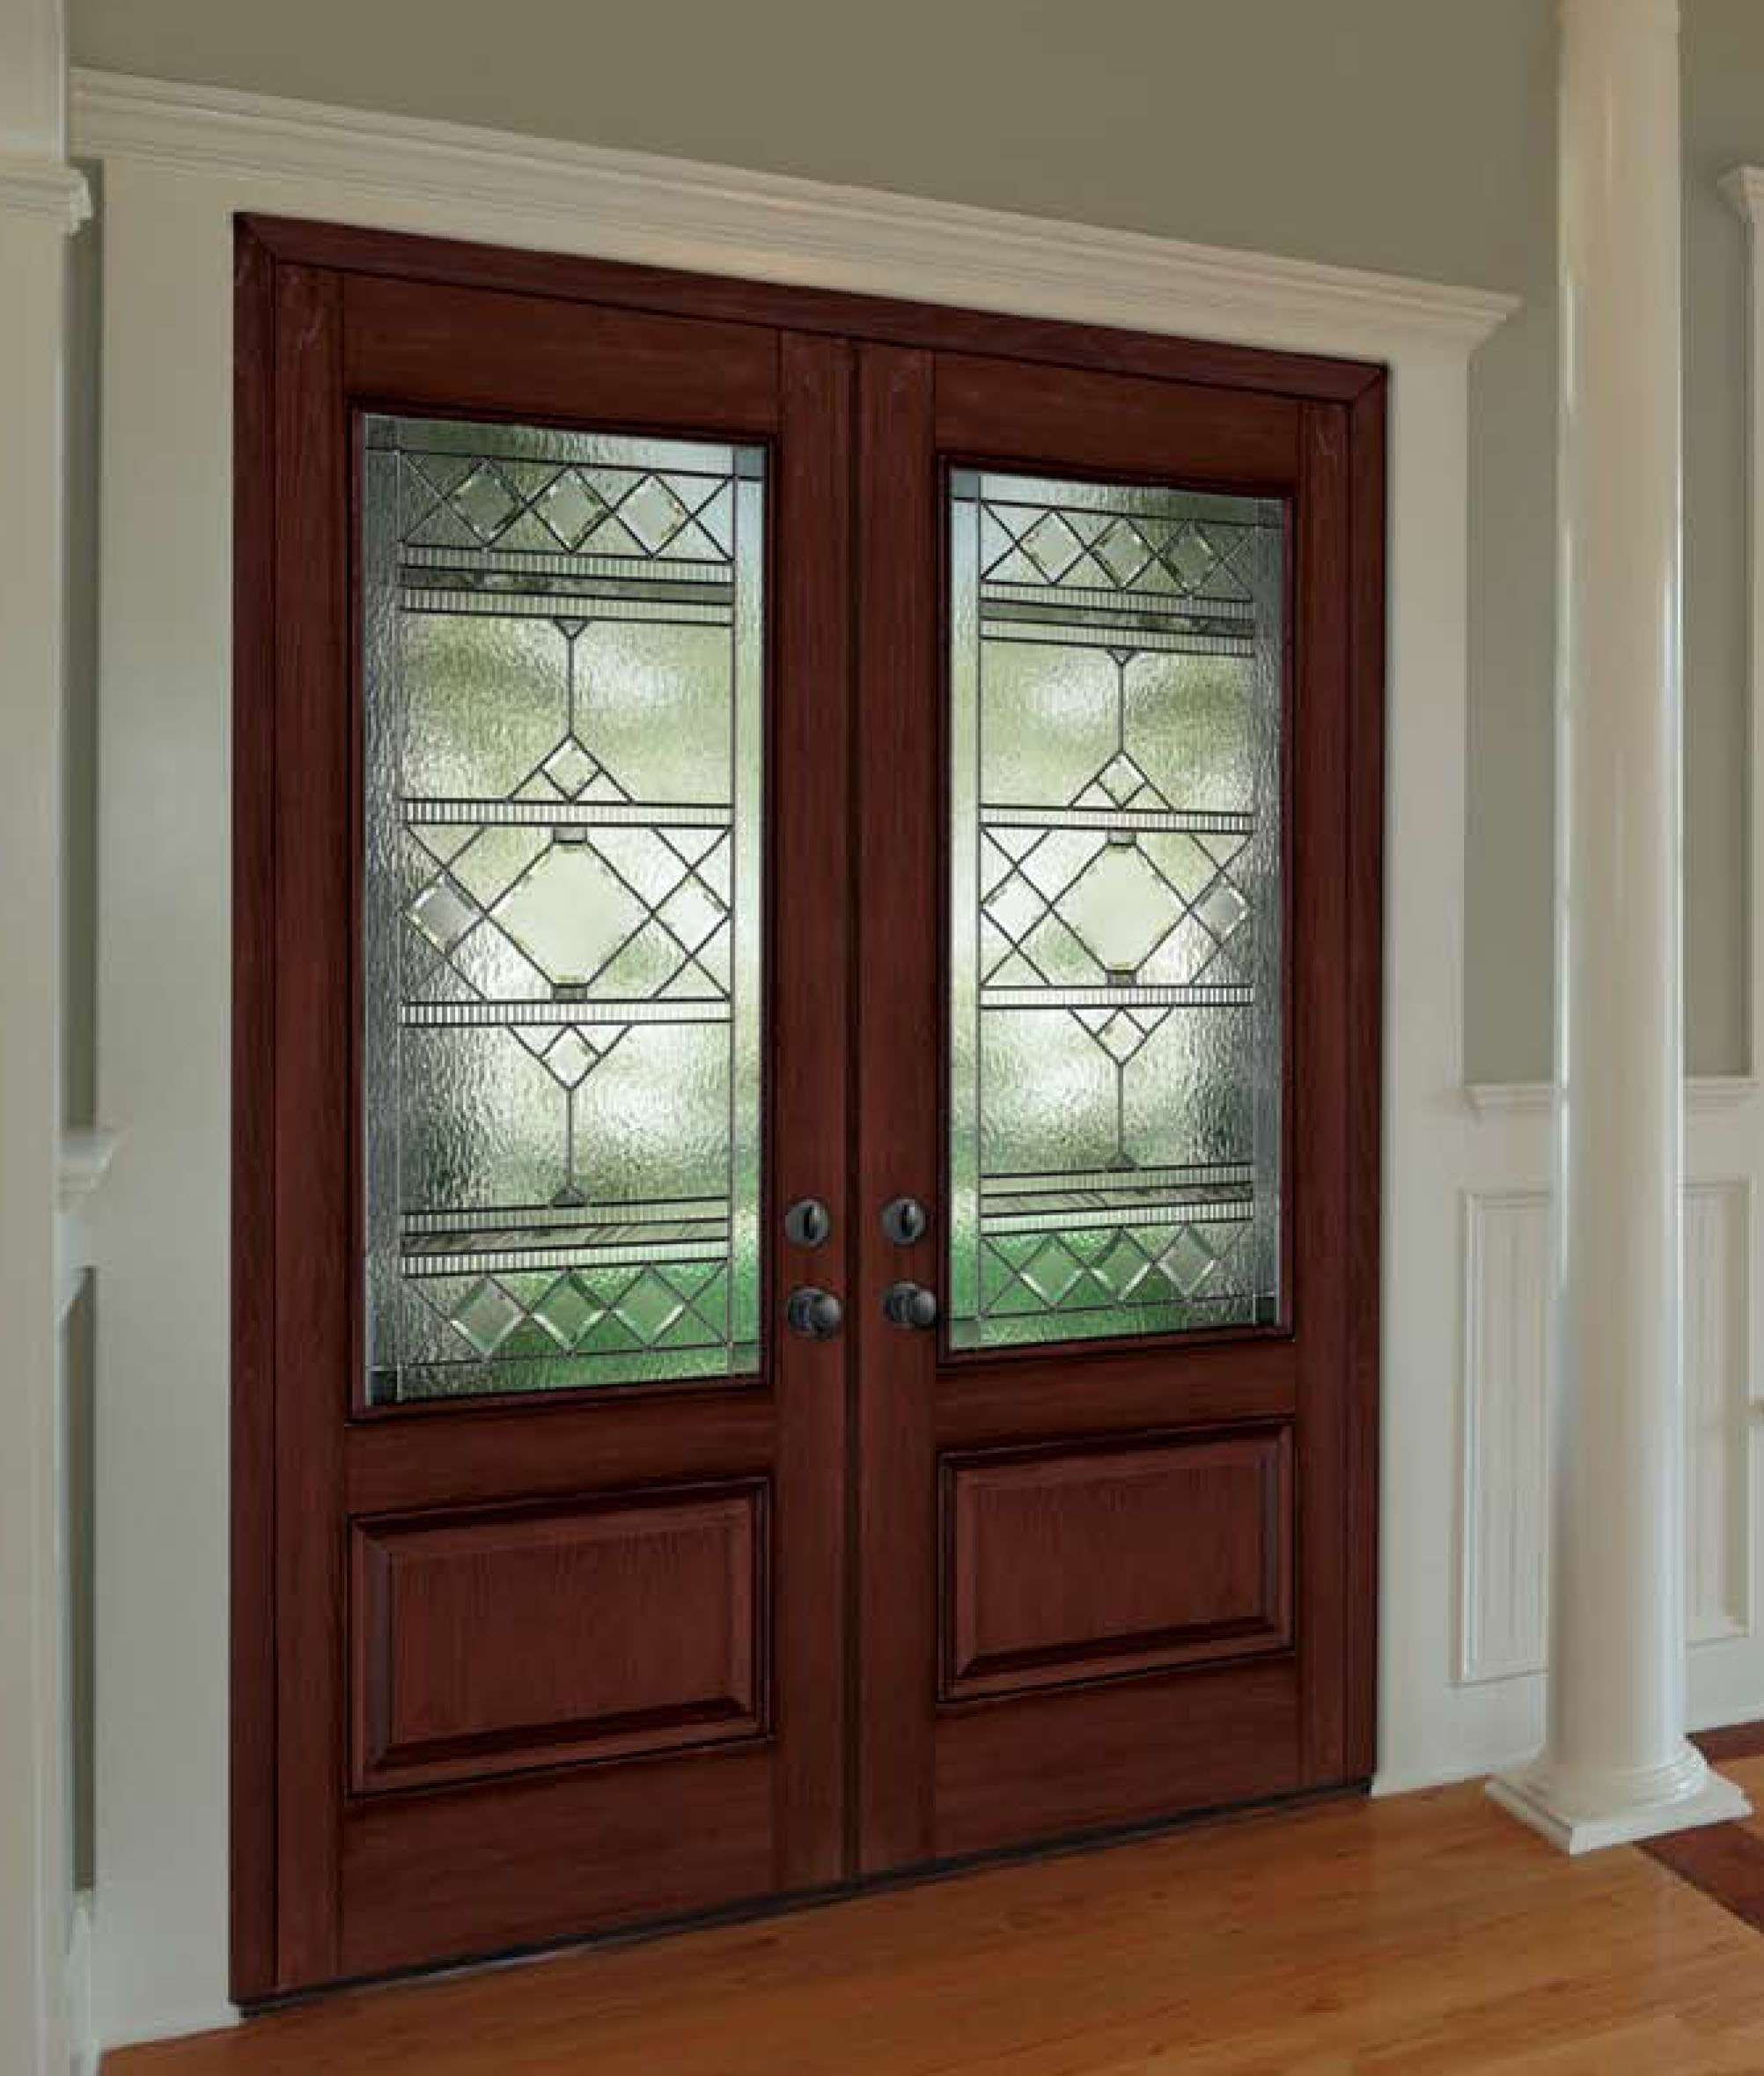 office doors with windows. Toronto Entry Door Office Doors With Windows 3